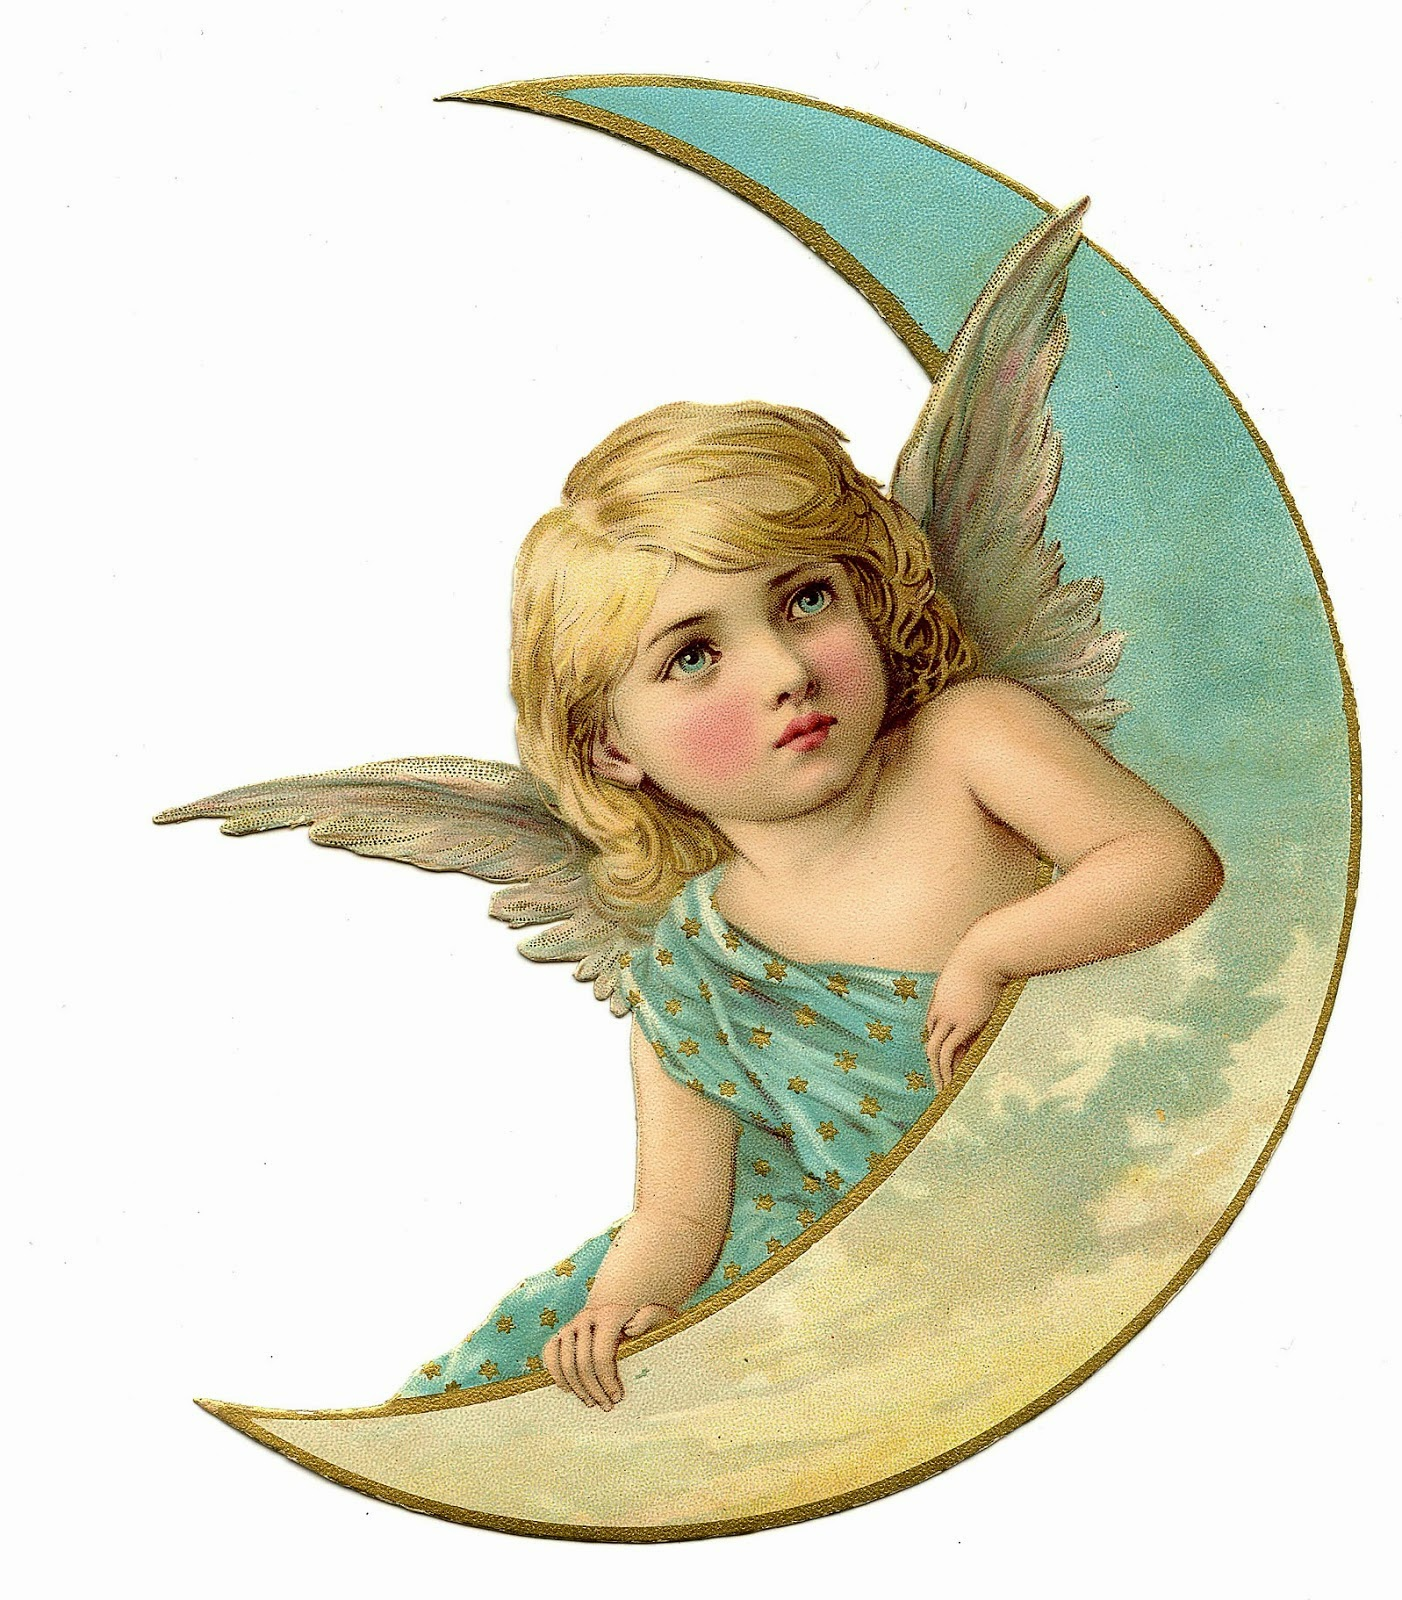 An angel leaning on a crescent moon